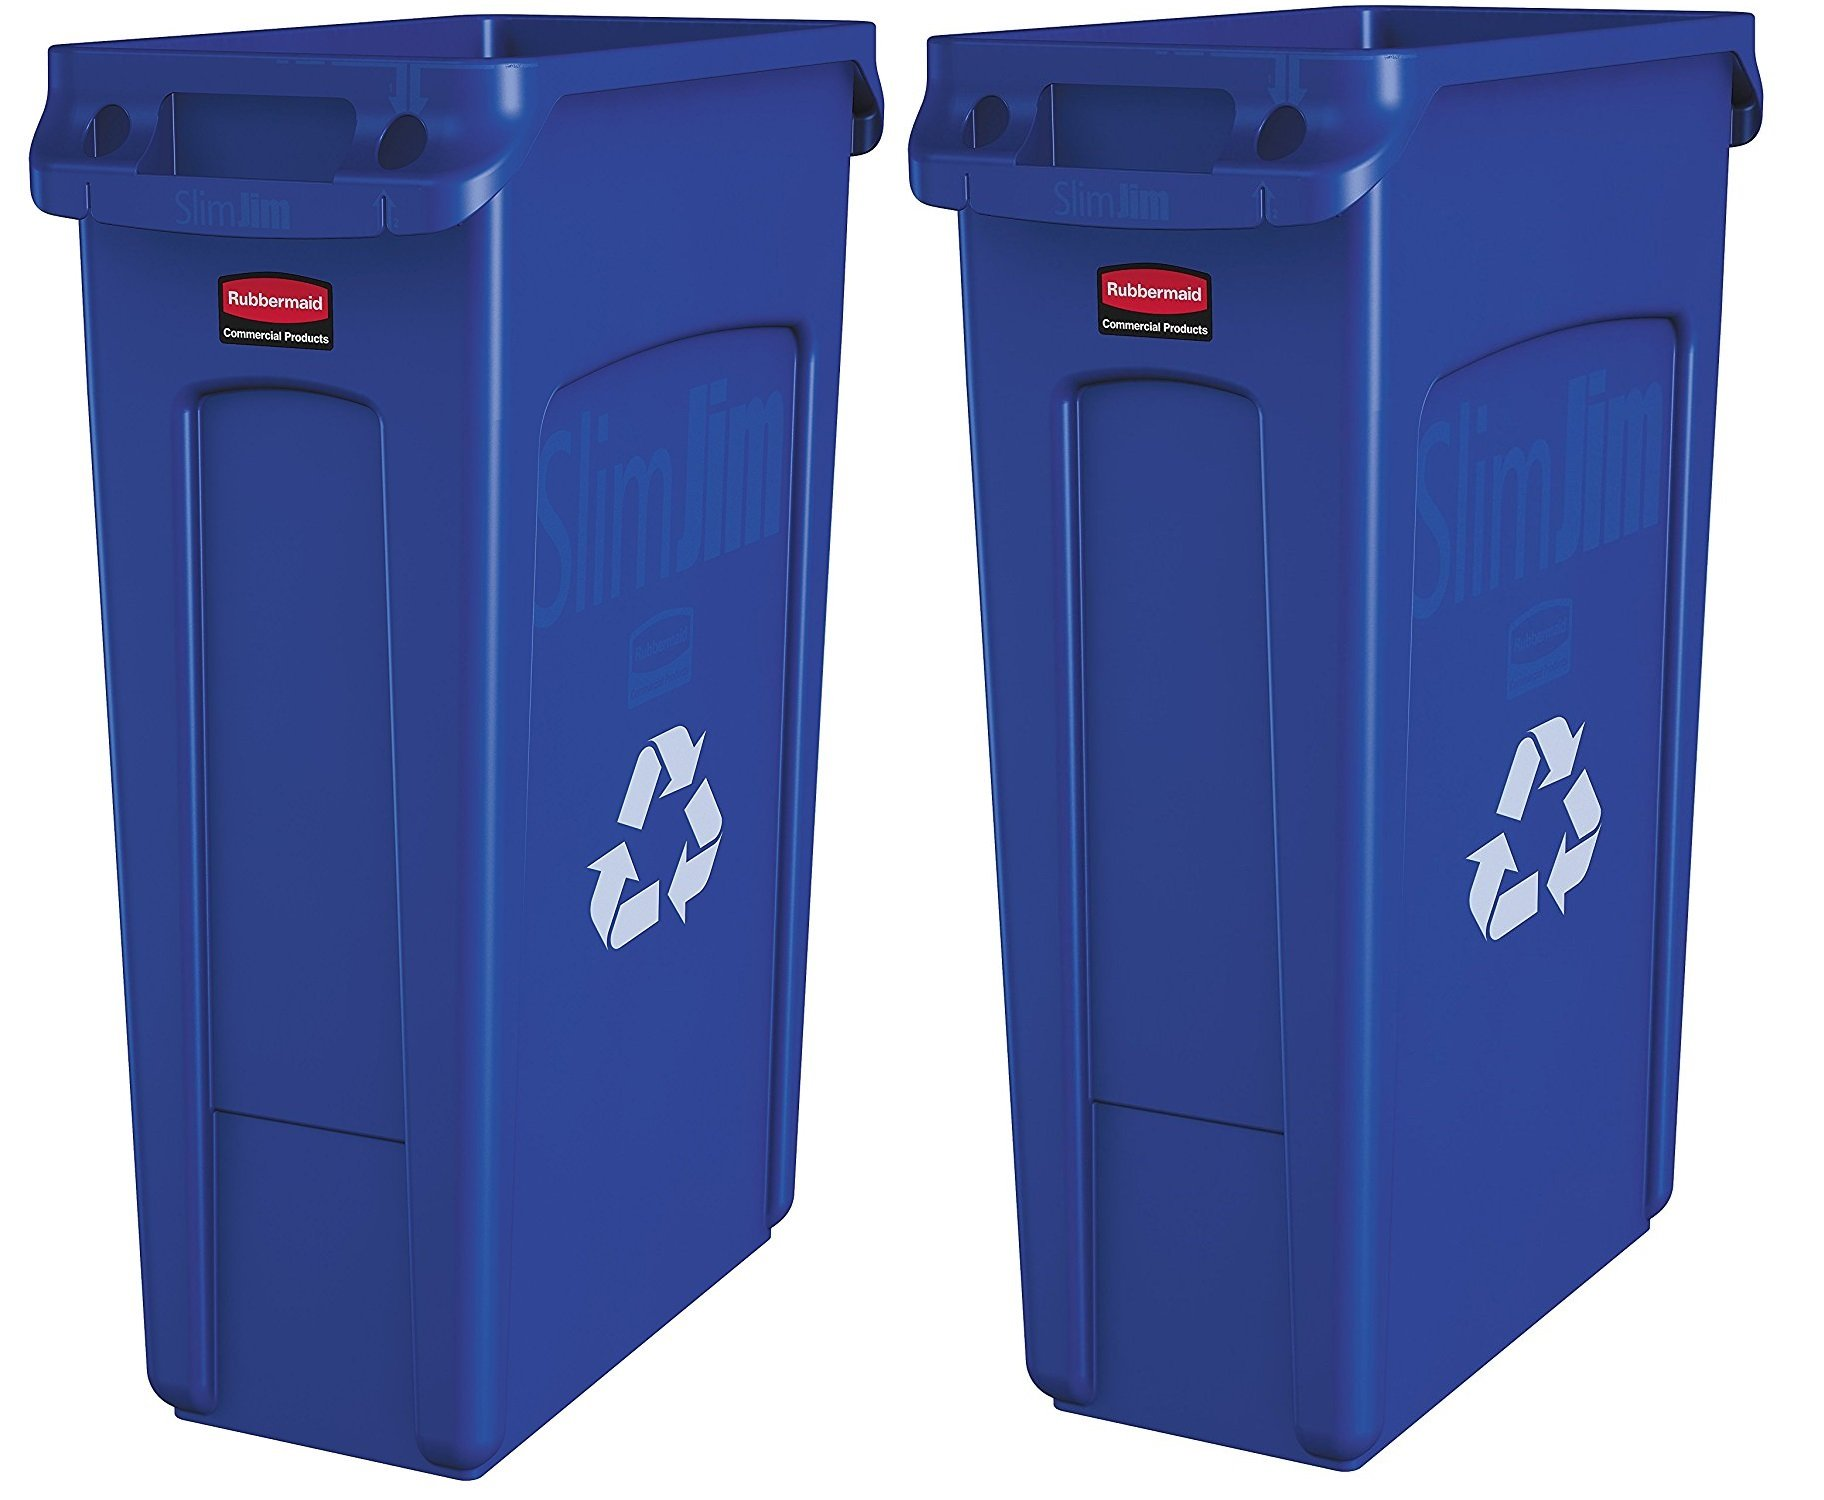 Rubbermaid Commercial Slim Jim Recycling Container with Venting Channels, Plastic, 23 Gallons, Blue (Pack of 2)